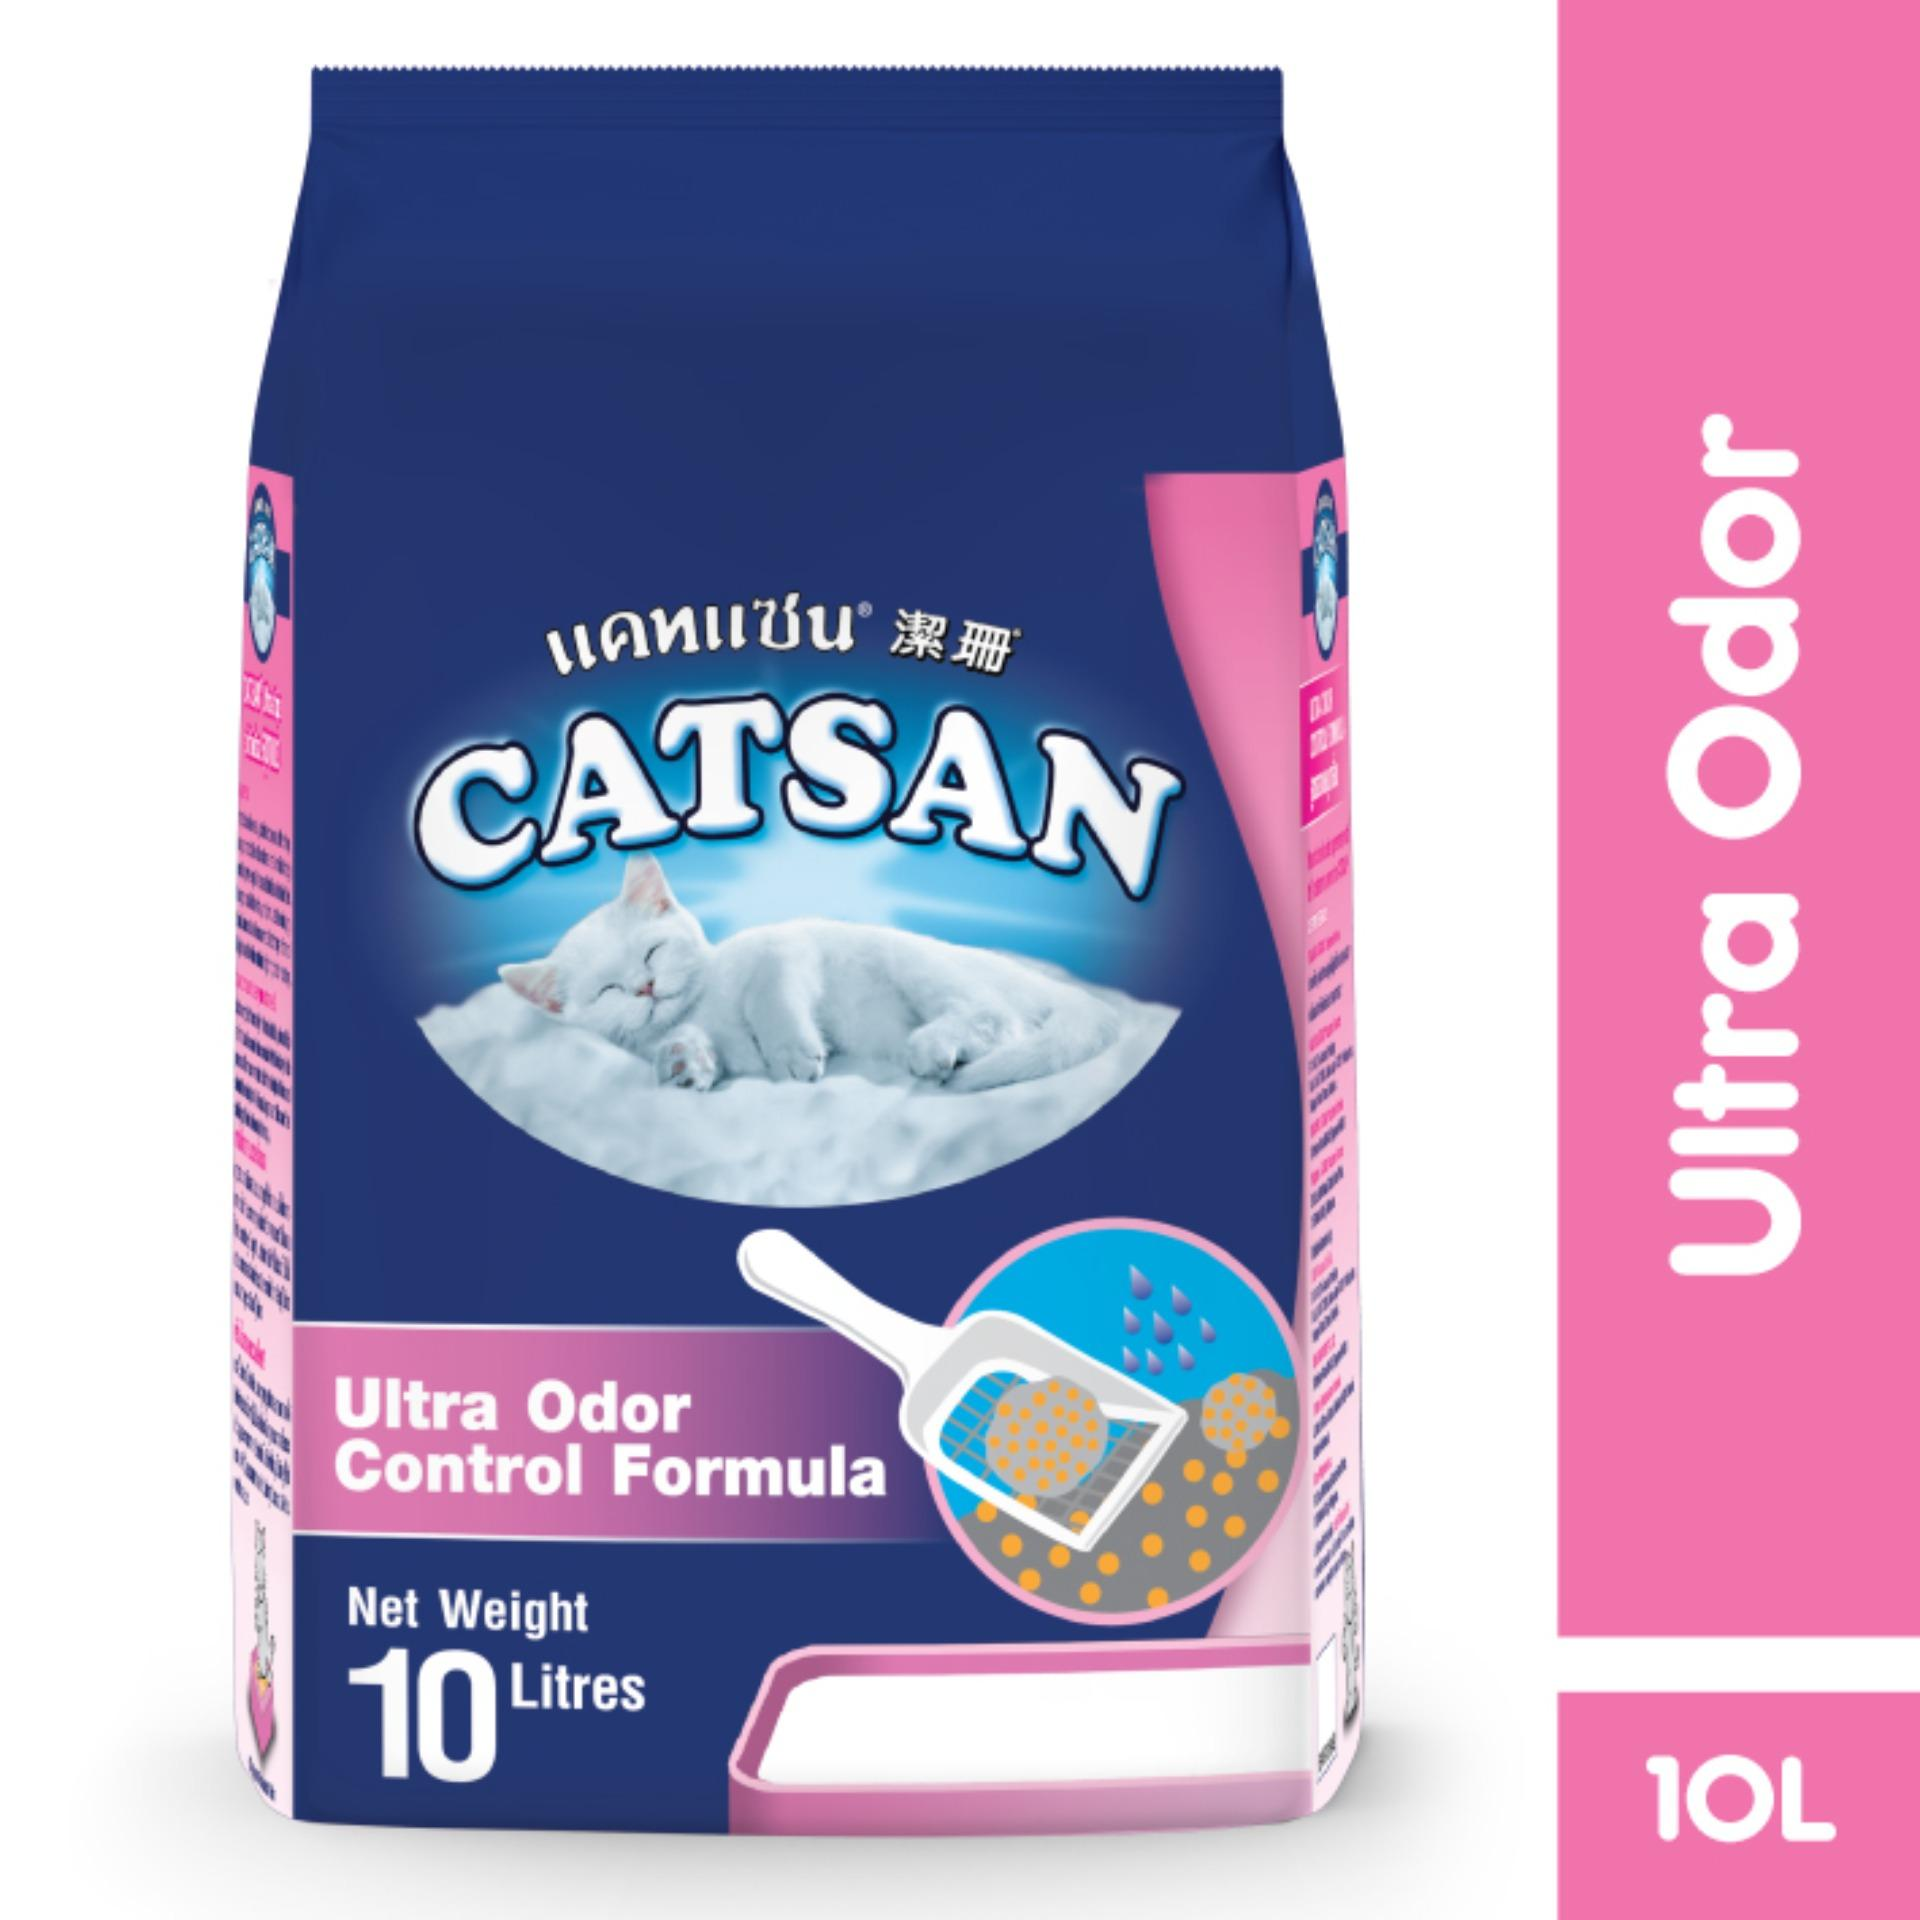 Catsan Ultra Odor Control Cat Litter 10 L By Sheba Official Store.